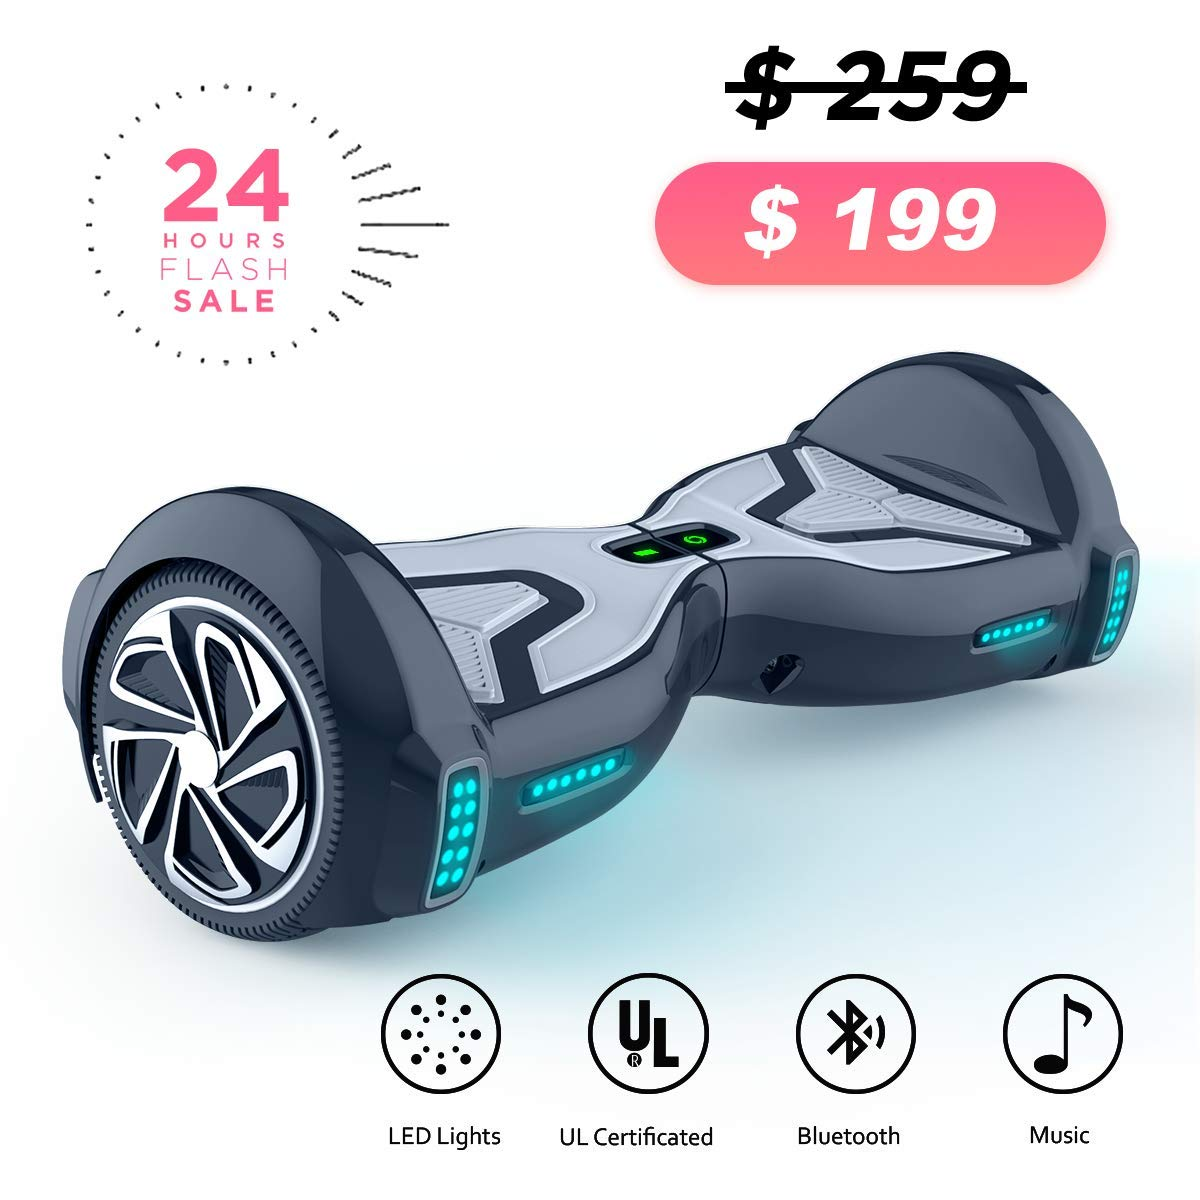 TOMOLOO Hoverboards - Self Balancing Hover Boards for Kids